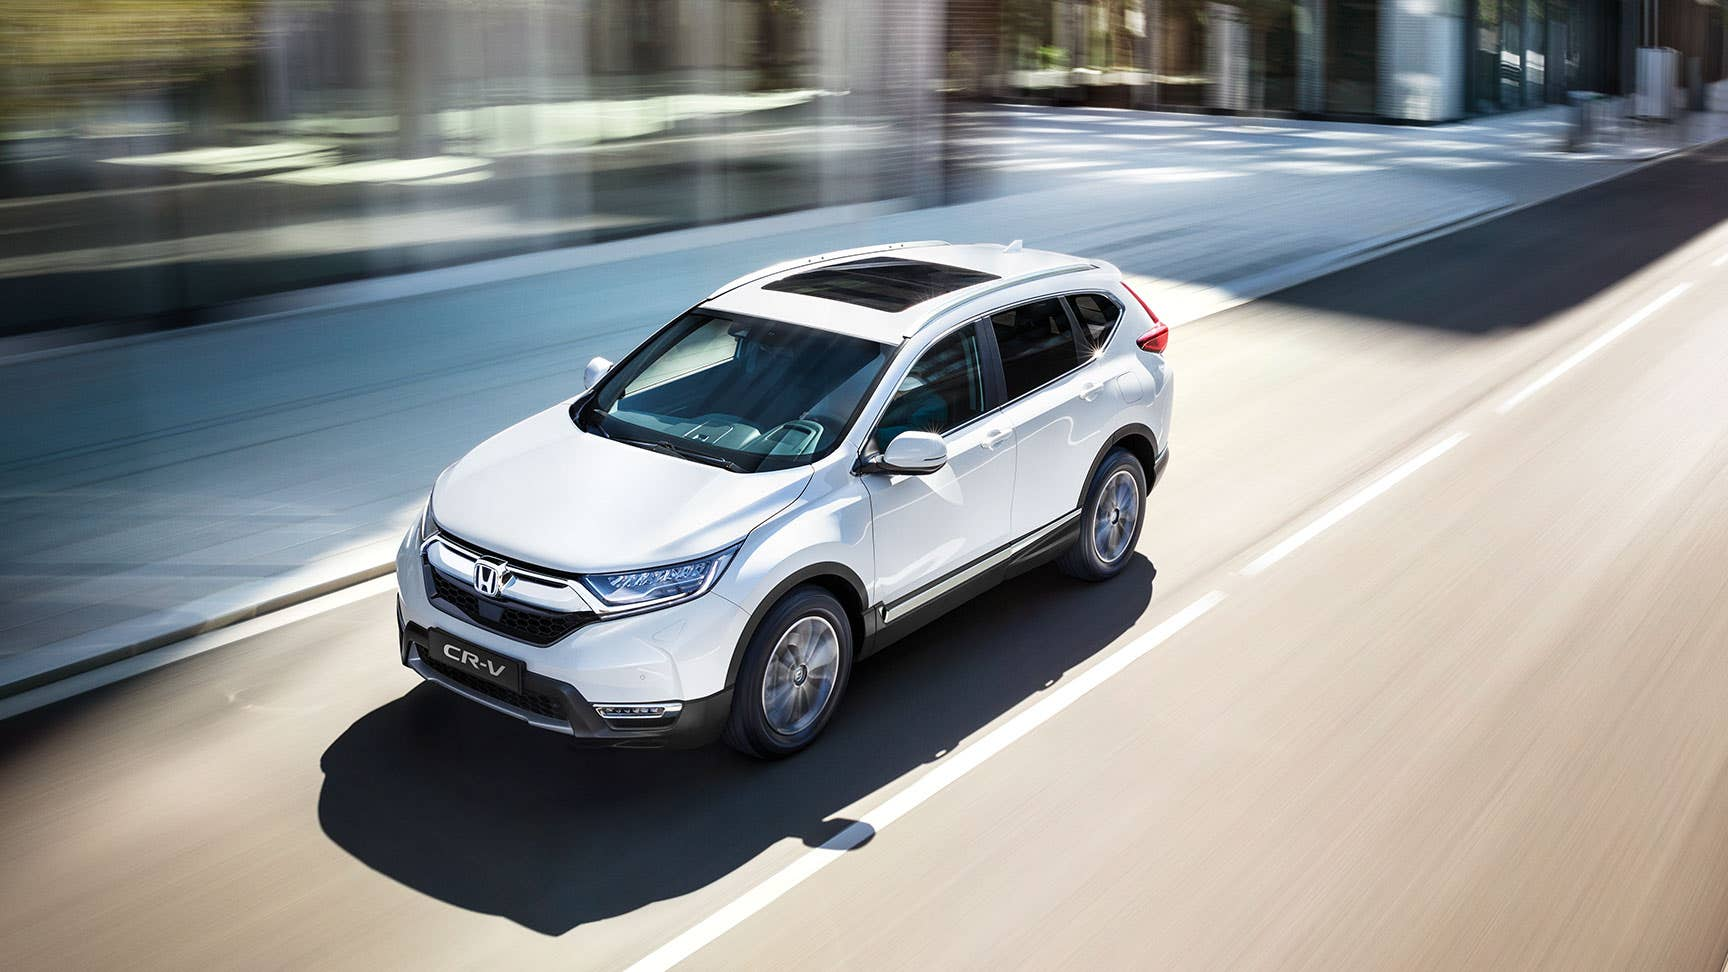 The Honda CR-V is getting styling and technology updates for 2021